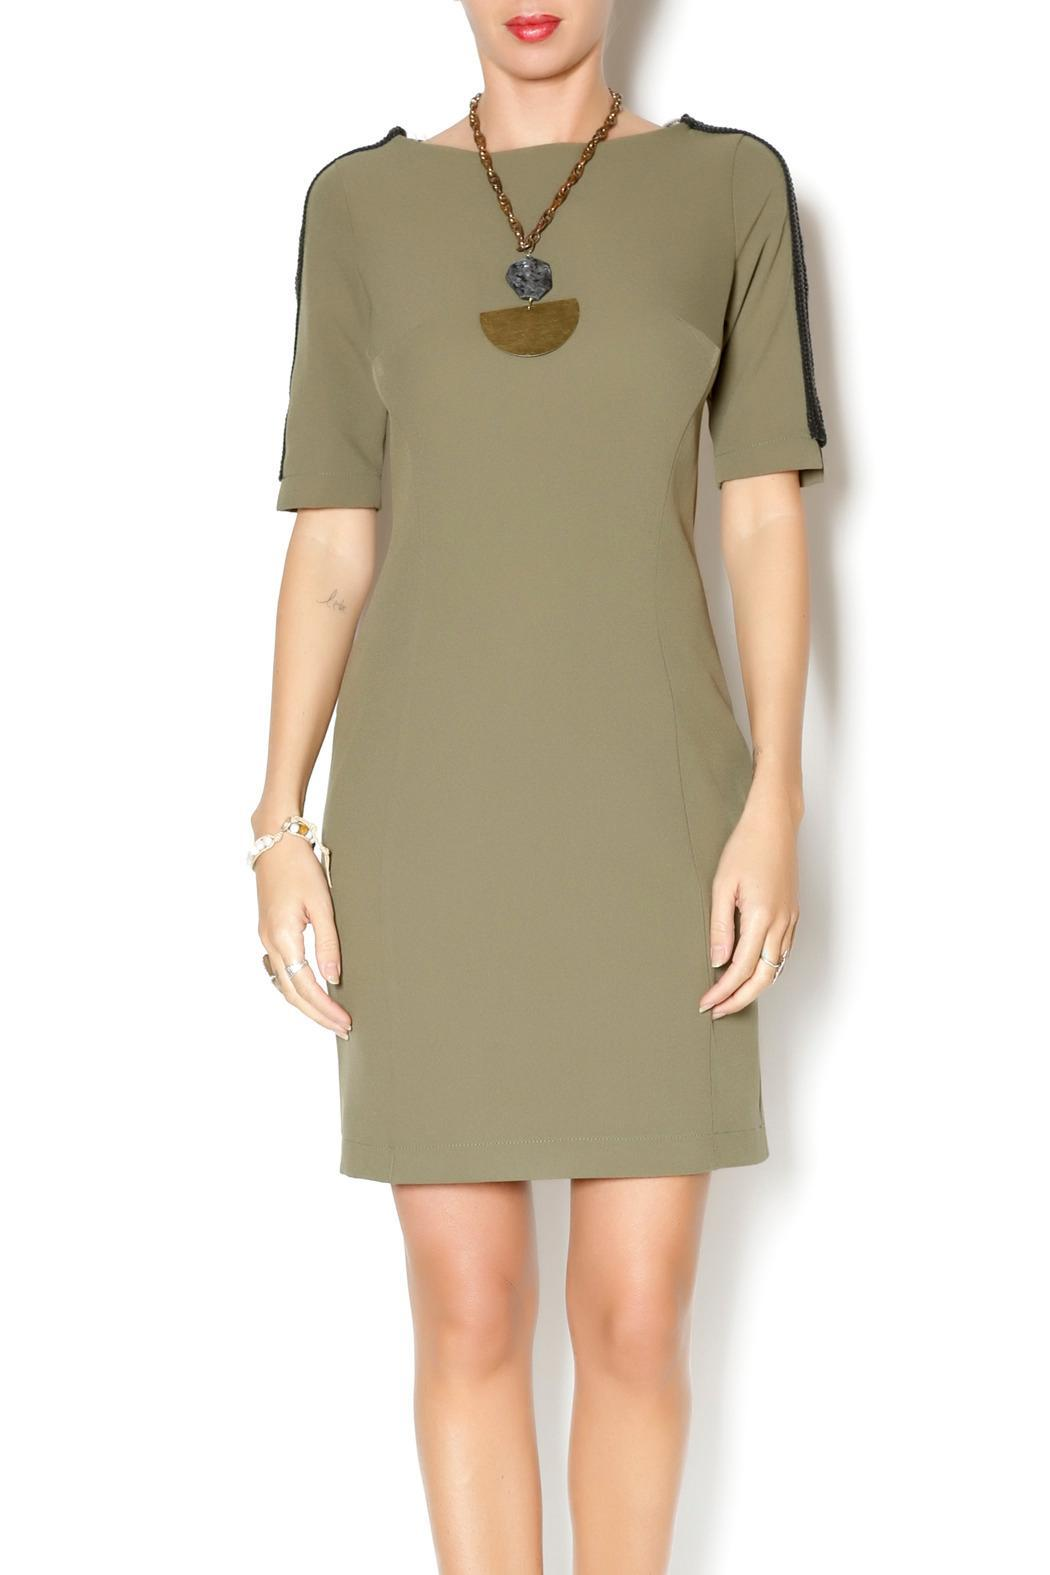 Joymiss Short Sleeve Fitted-Dress - Main Image